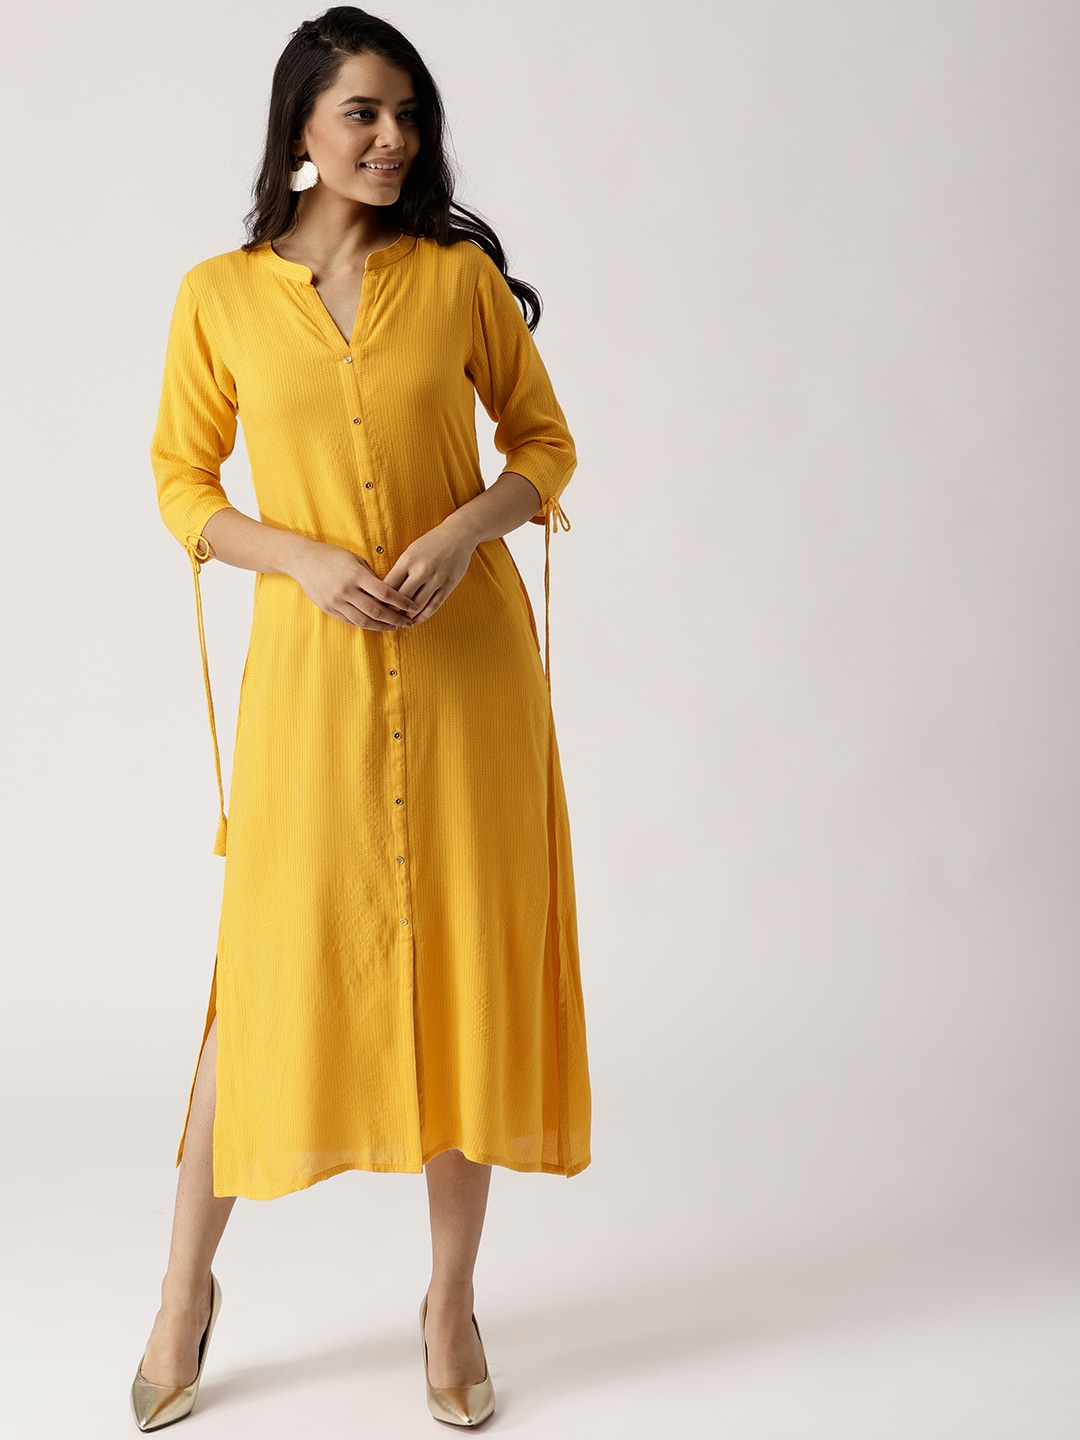 3b64f9c38966 Yellow Dress For Women Dresses Material - Buy Yellow Dress For Women Dresses  Material online in India